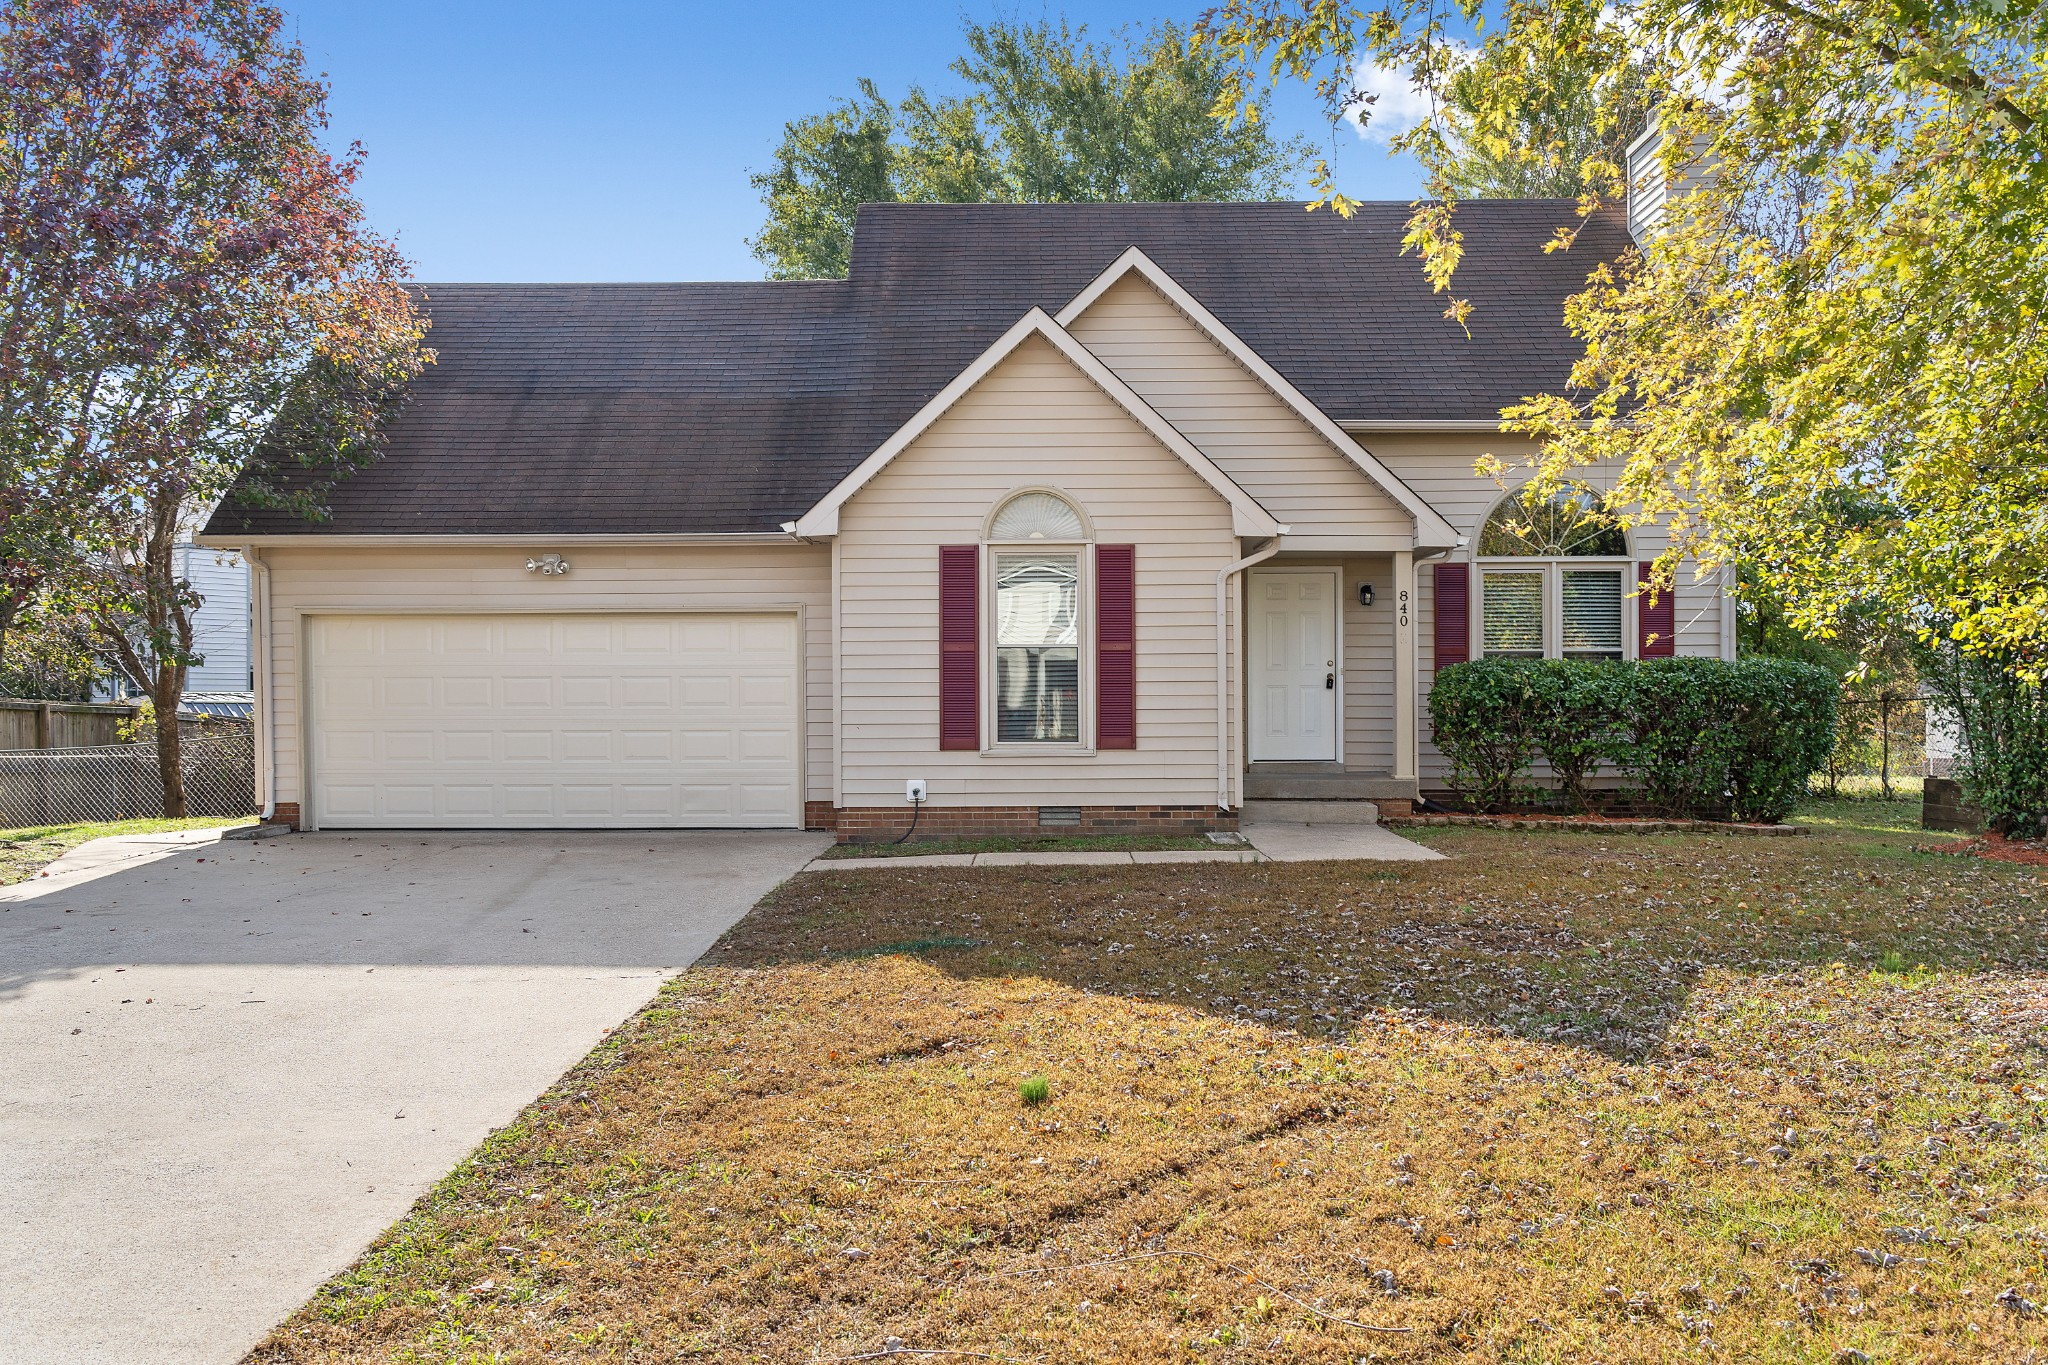 840 Iris Lane, Clarksville, TN 37042 - Clarksville, TN real estate listing